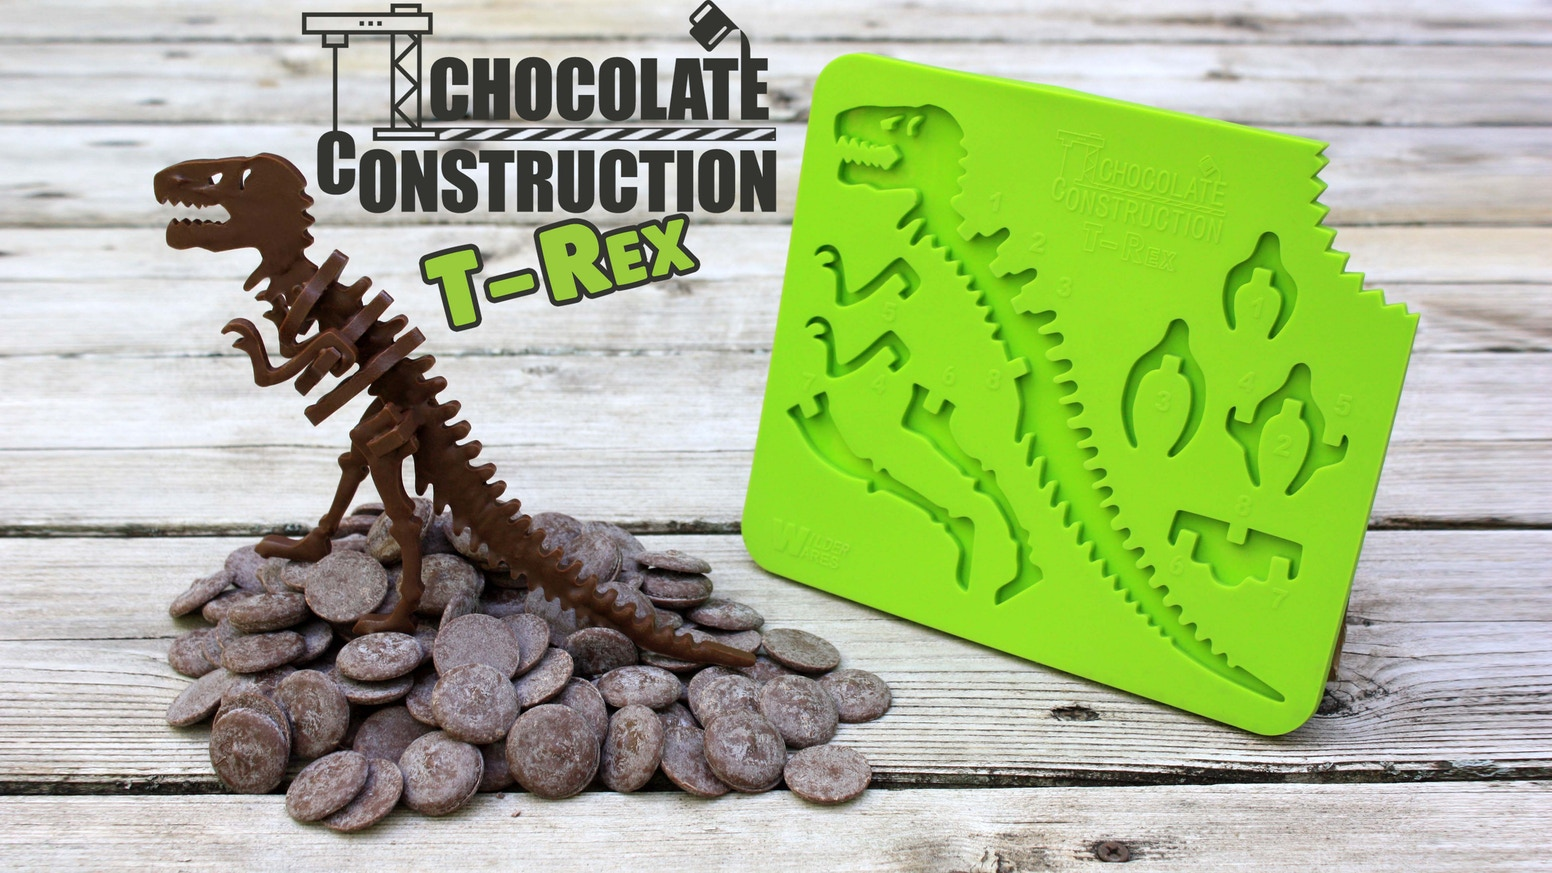 The world's first notched, chocolate-building mold! Melt, fill, excavate, and build your own edible, 6-inch tall, chocolate T-Rex!